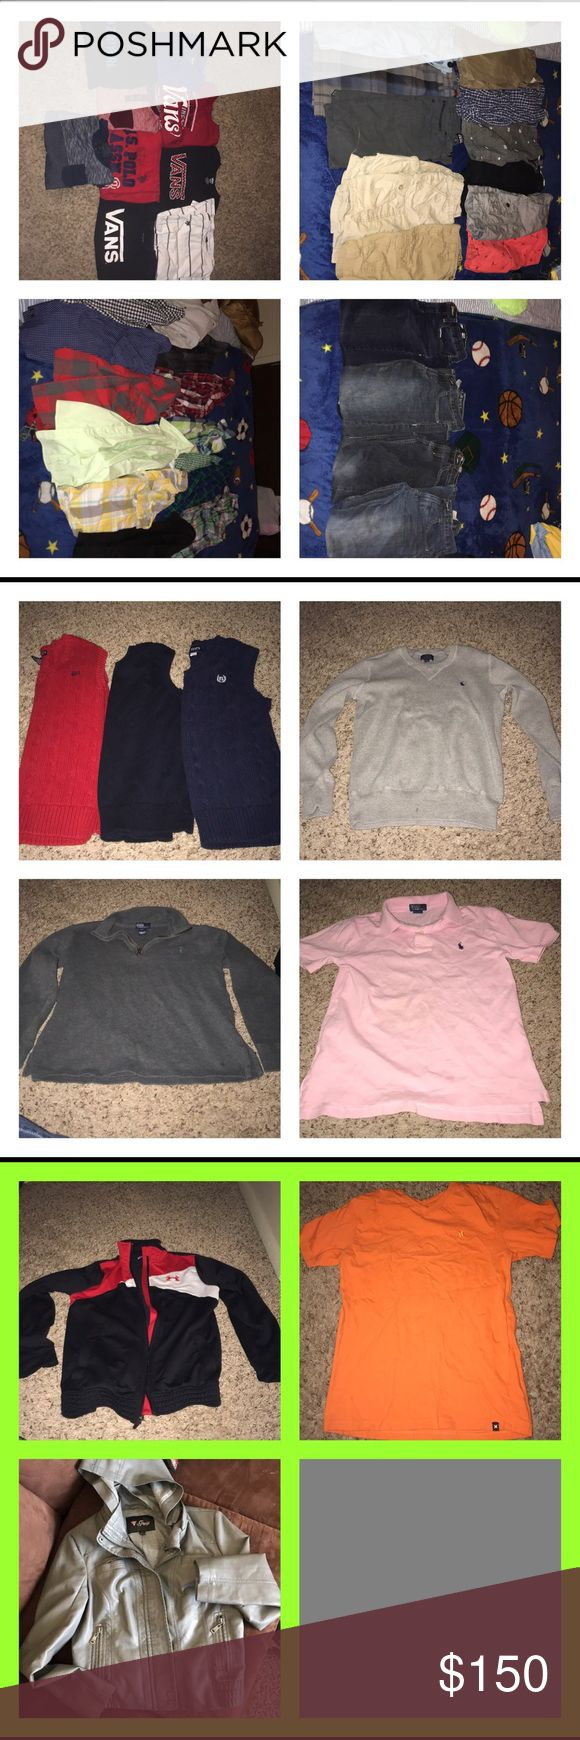 Boys 10/12 bundle All items listed separately or as a bundle. 45-47 items. Many different brands.  Vans, Hurley, us polo, polo by Ralph Lauren, zoo York, under armour, epic threads, American cruder and ocean current, guess, children's place, chaps and many more!! I'm giving a better deal if you take it all. I want it out! Too much clutter.  If you want individual items I will sell them $5/each (if brand name) Vans Other